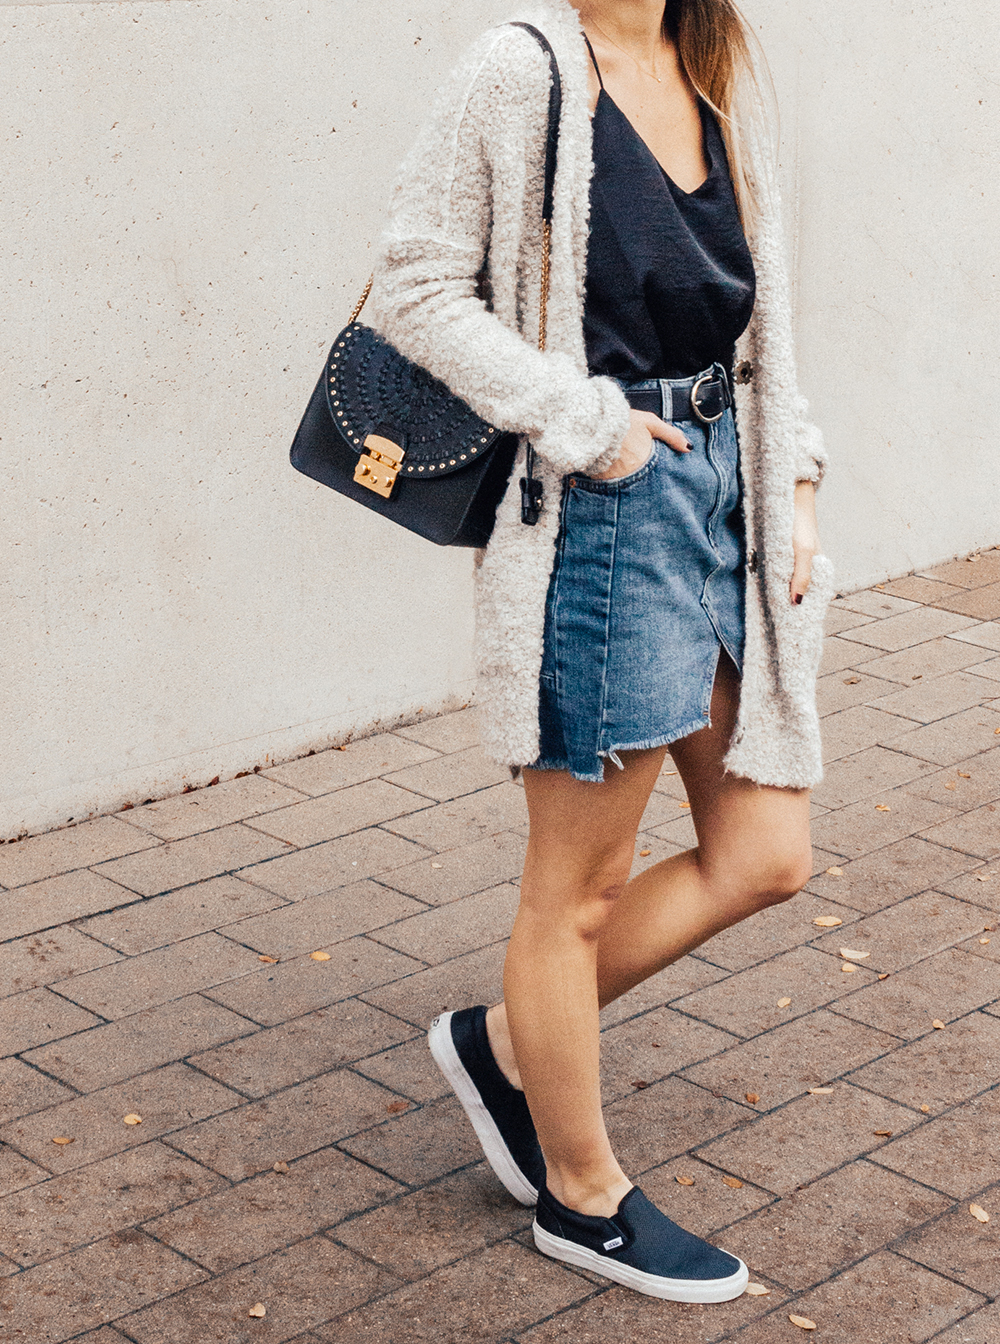 livvyland-blog-olivia-watson-denim-skirt-silk-cami-furla-black-handbag-vans-slip-on-sneakers-6